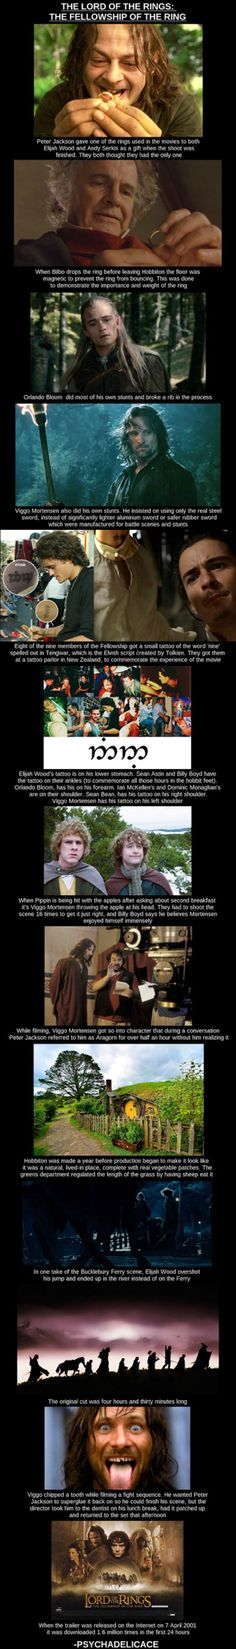 Things you probably never knew. It blew my mind.